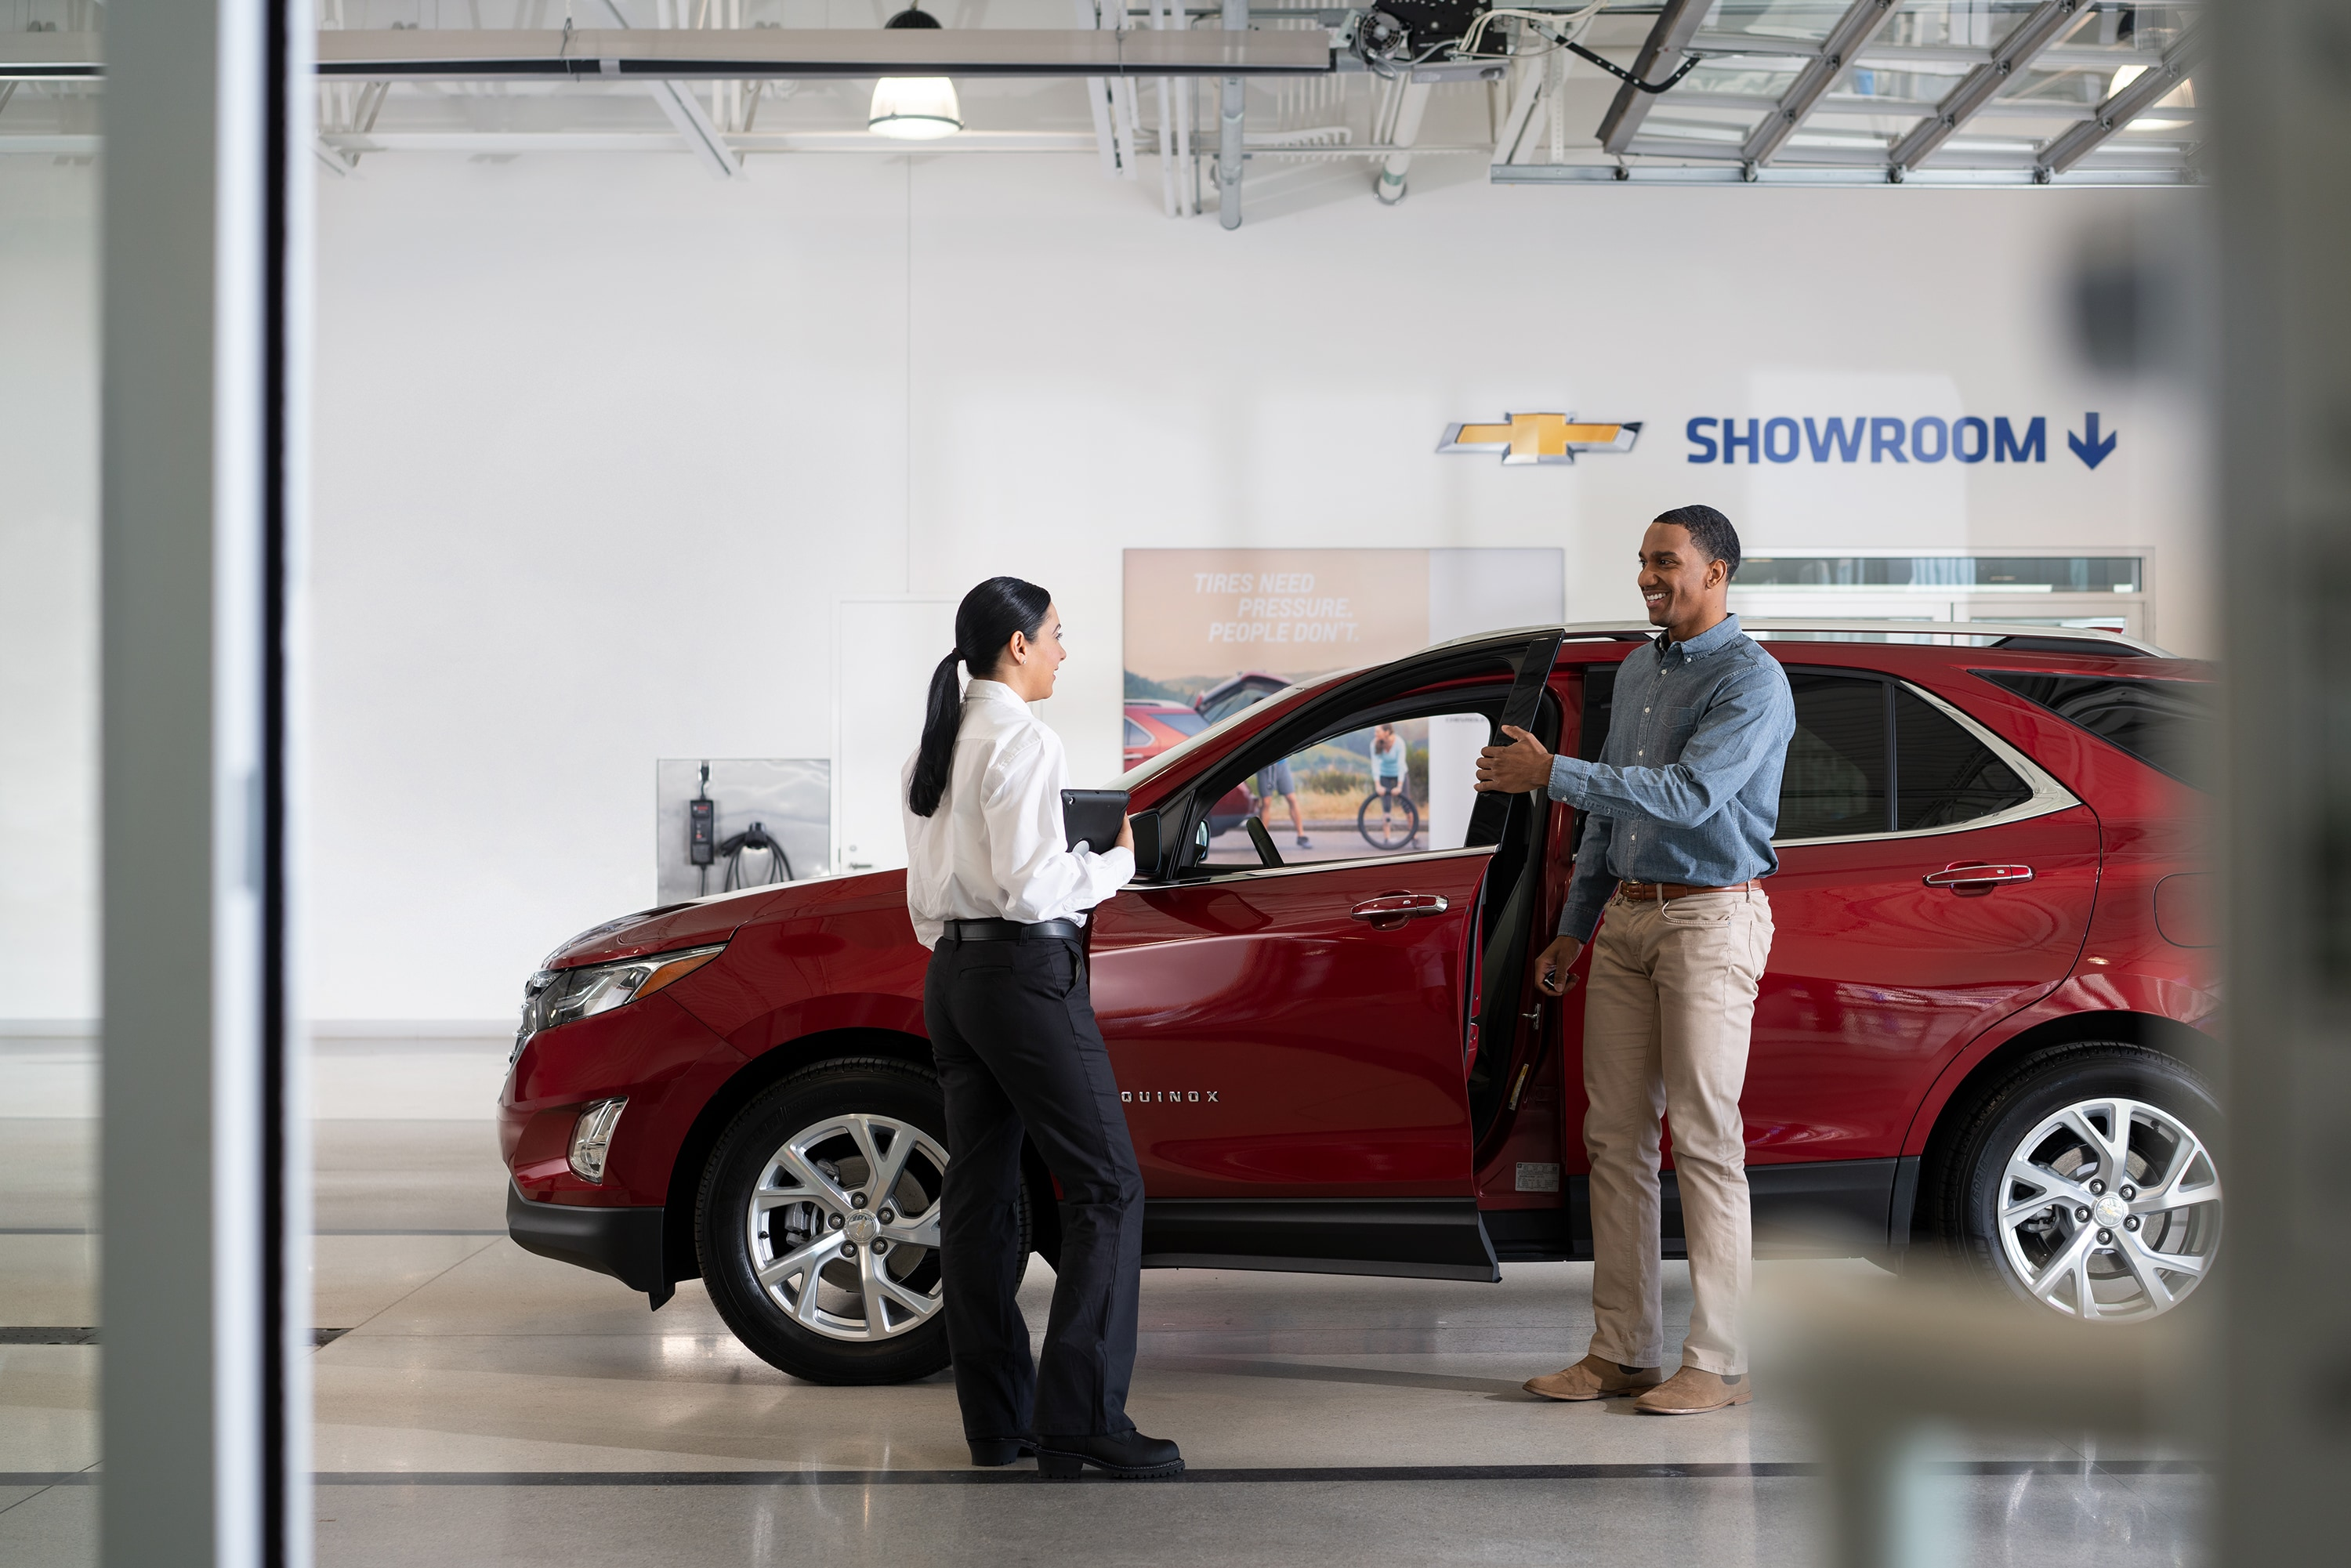 Chevrolet of New Bern is a Car Dealership in New Bern near Bogue NC | Chevrolet Service Advisor meeting with customer